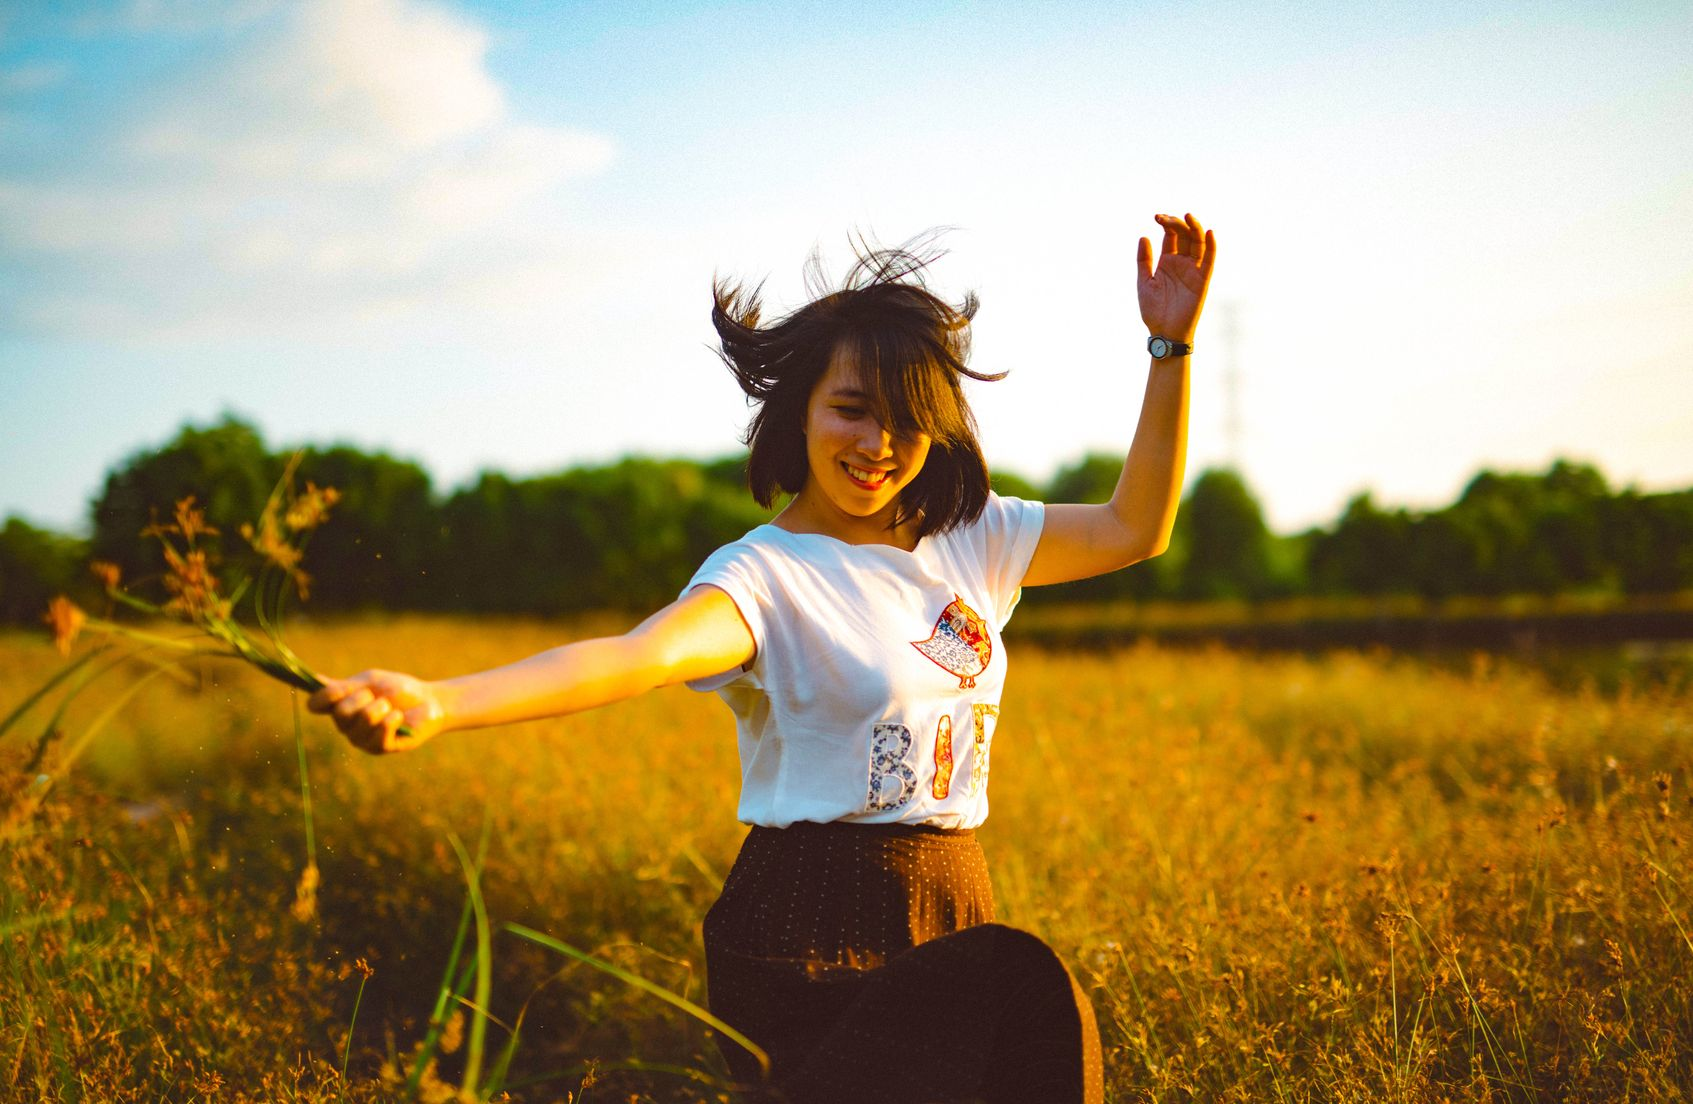 Woman jumping for joy in the middle of a grassy field (indicating that learning personal finance can help you become debt-free)